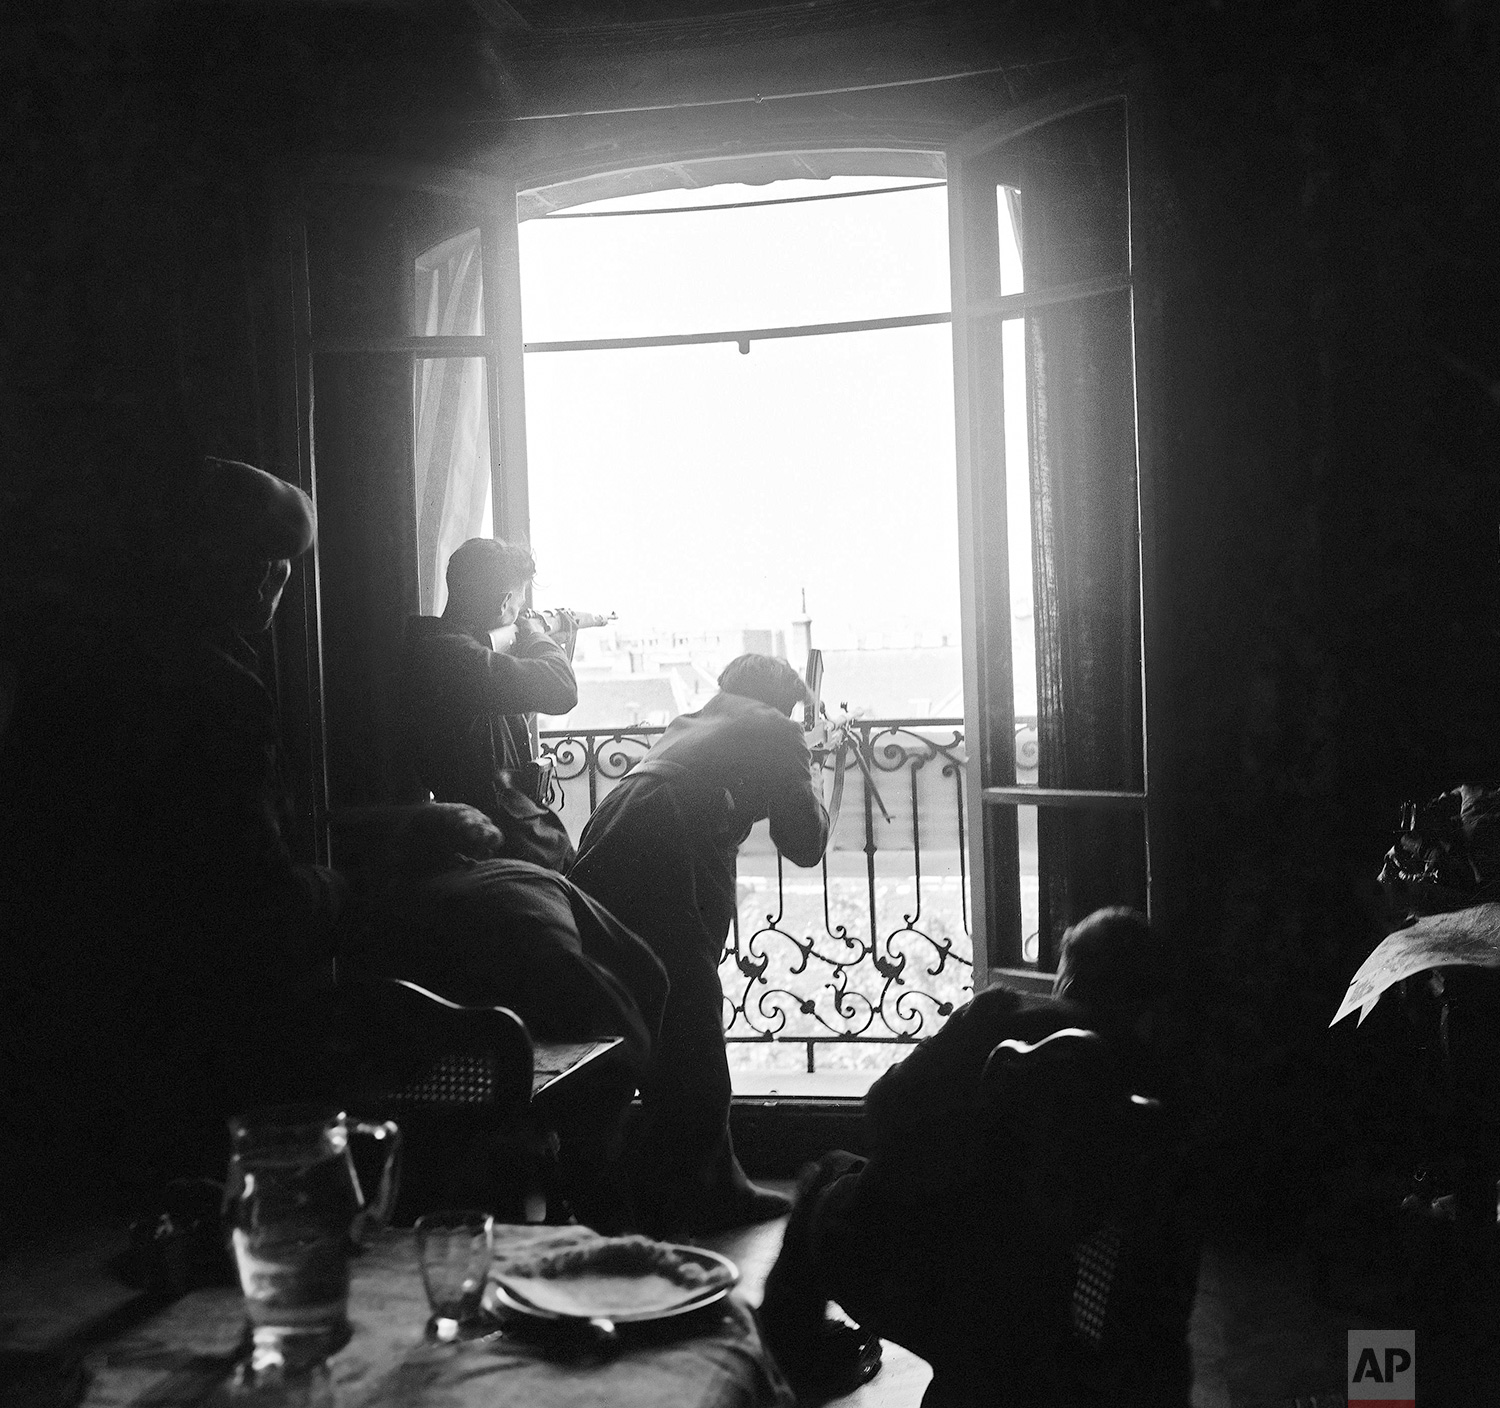 Members of the French Forces of the Interior (FFI) shoot at German snipers from a window in Paris on August 26, 1944. (AP Photo/Peter J. Carroll)